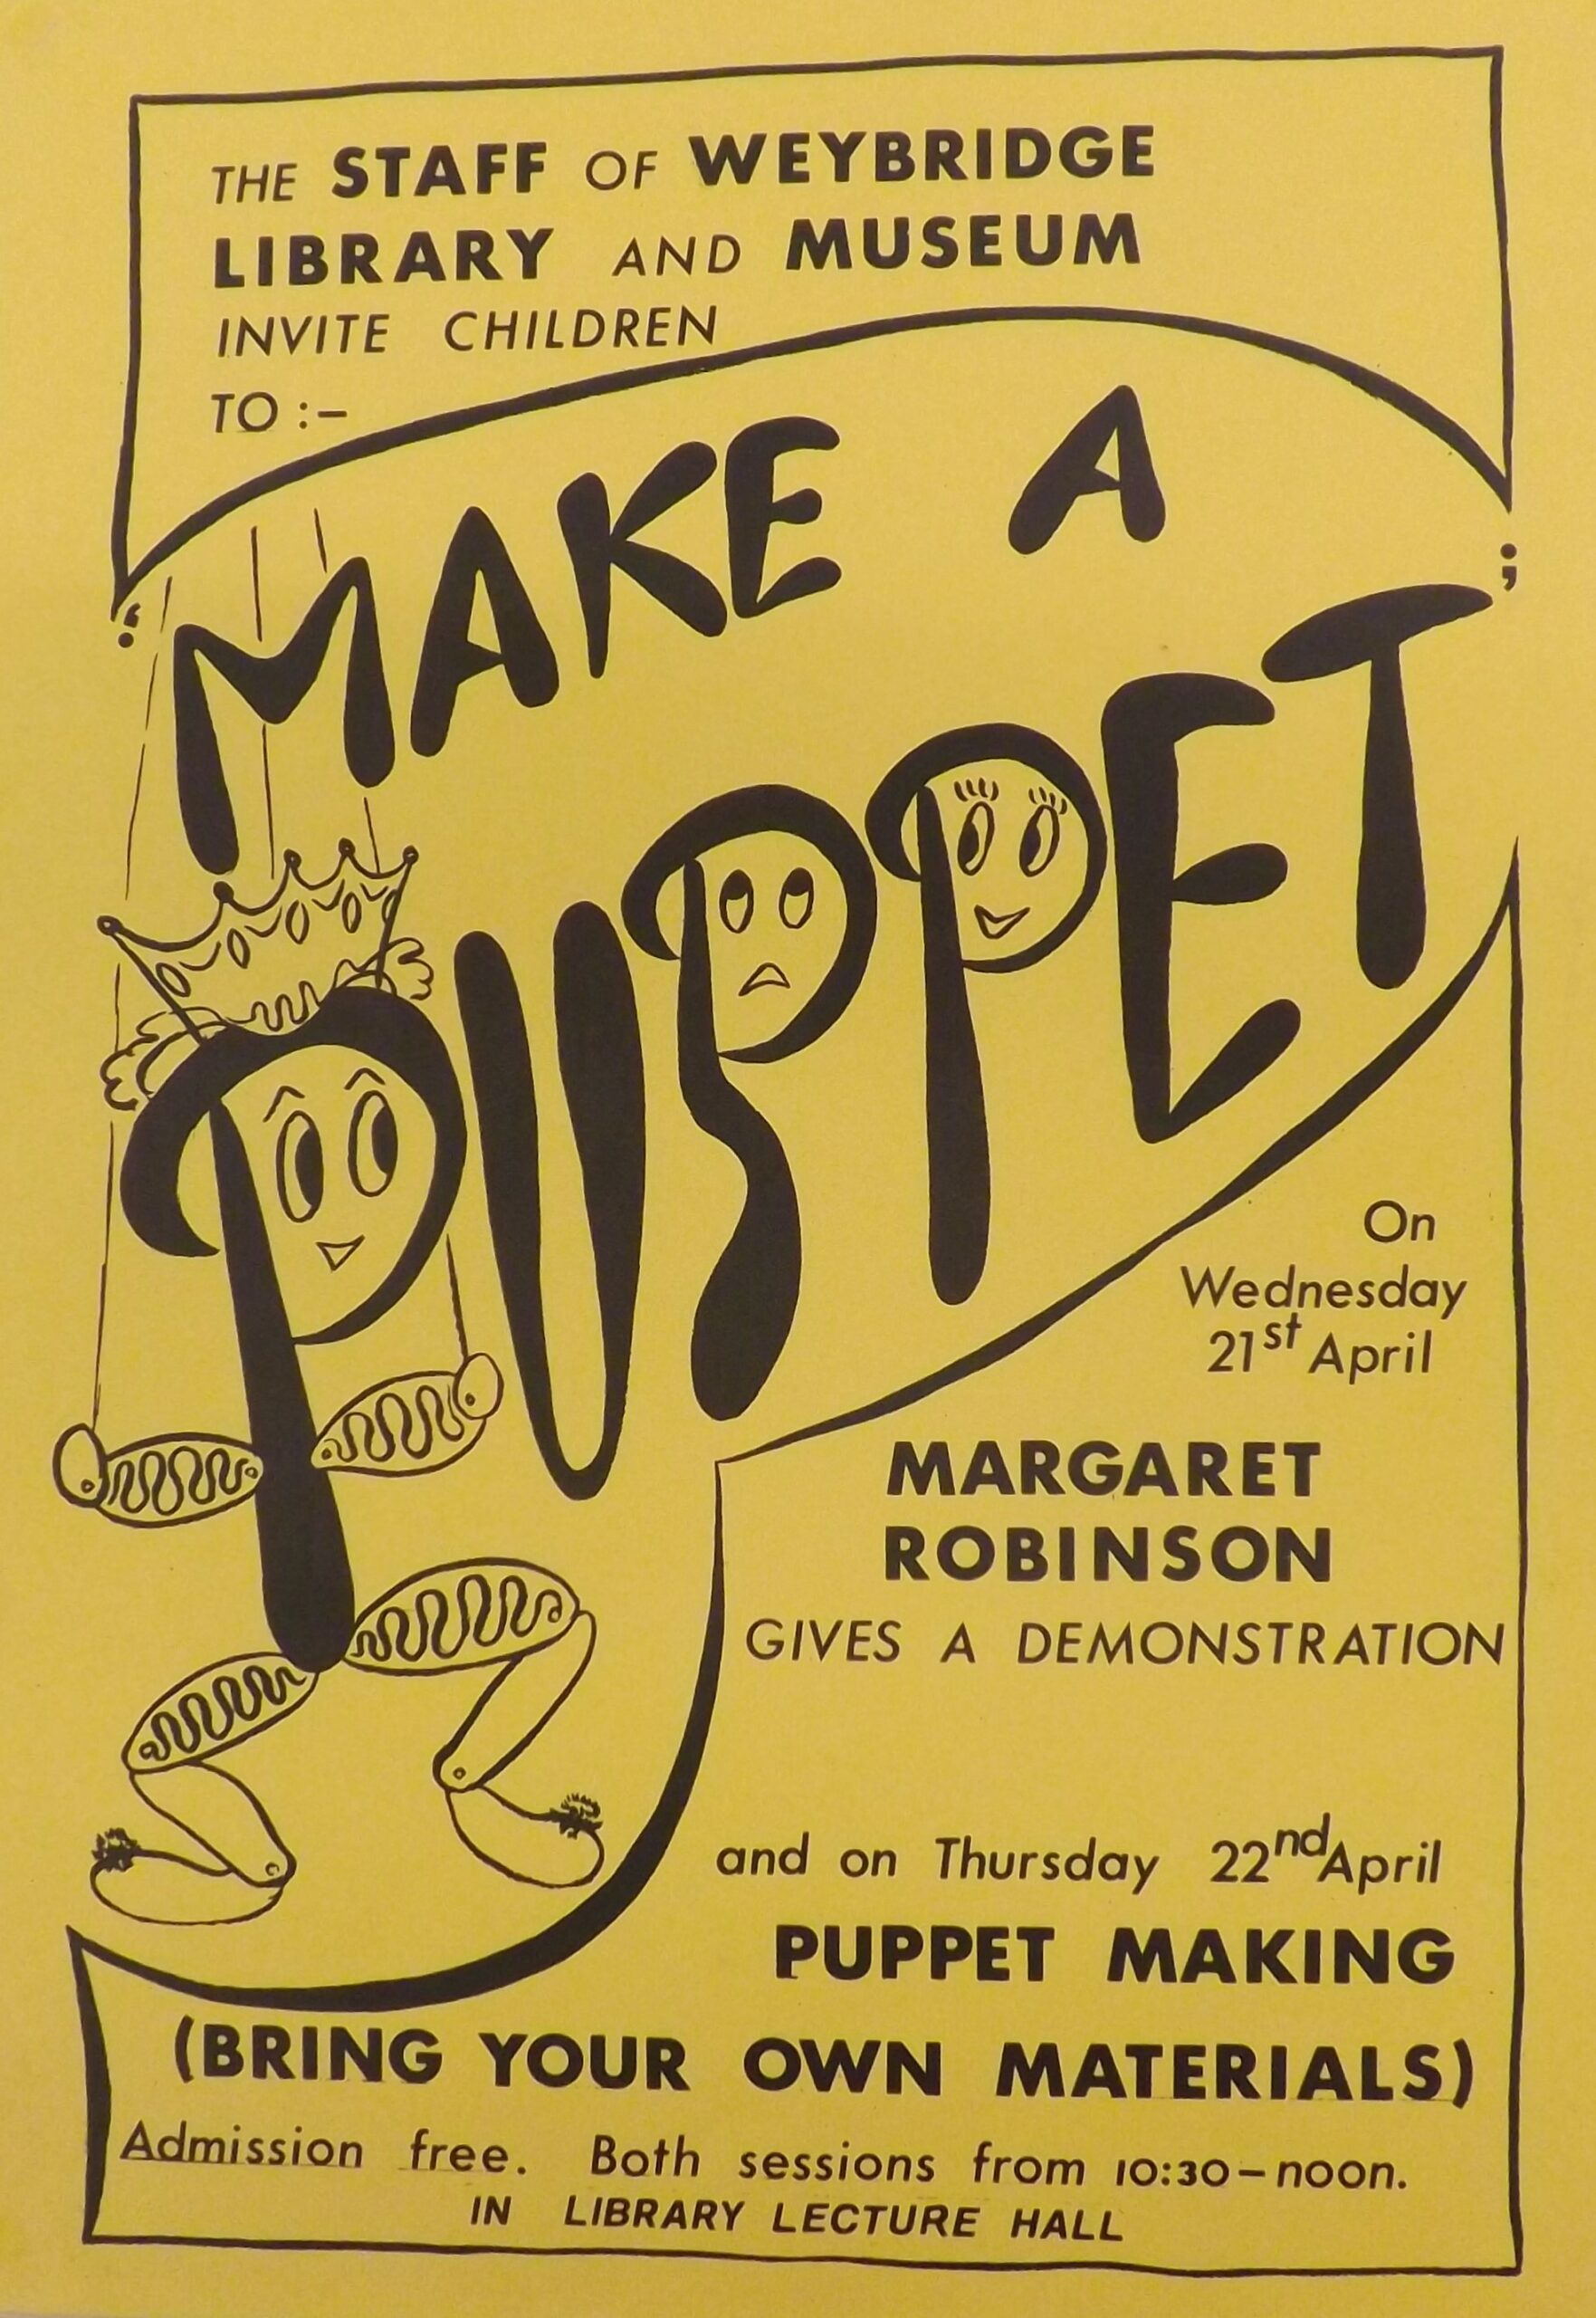 Museum poster from Weybridge Museum (now Elmbridge Museum) advertising their 'Make a Puppet' children's workshop that was put on in their former gallery space above Weybridge Library, Church Street, c.1970-80s.